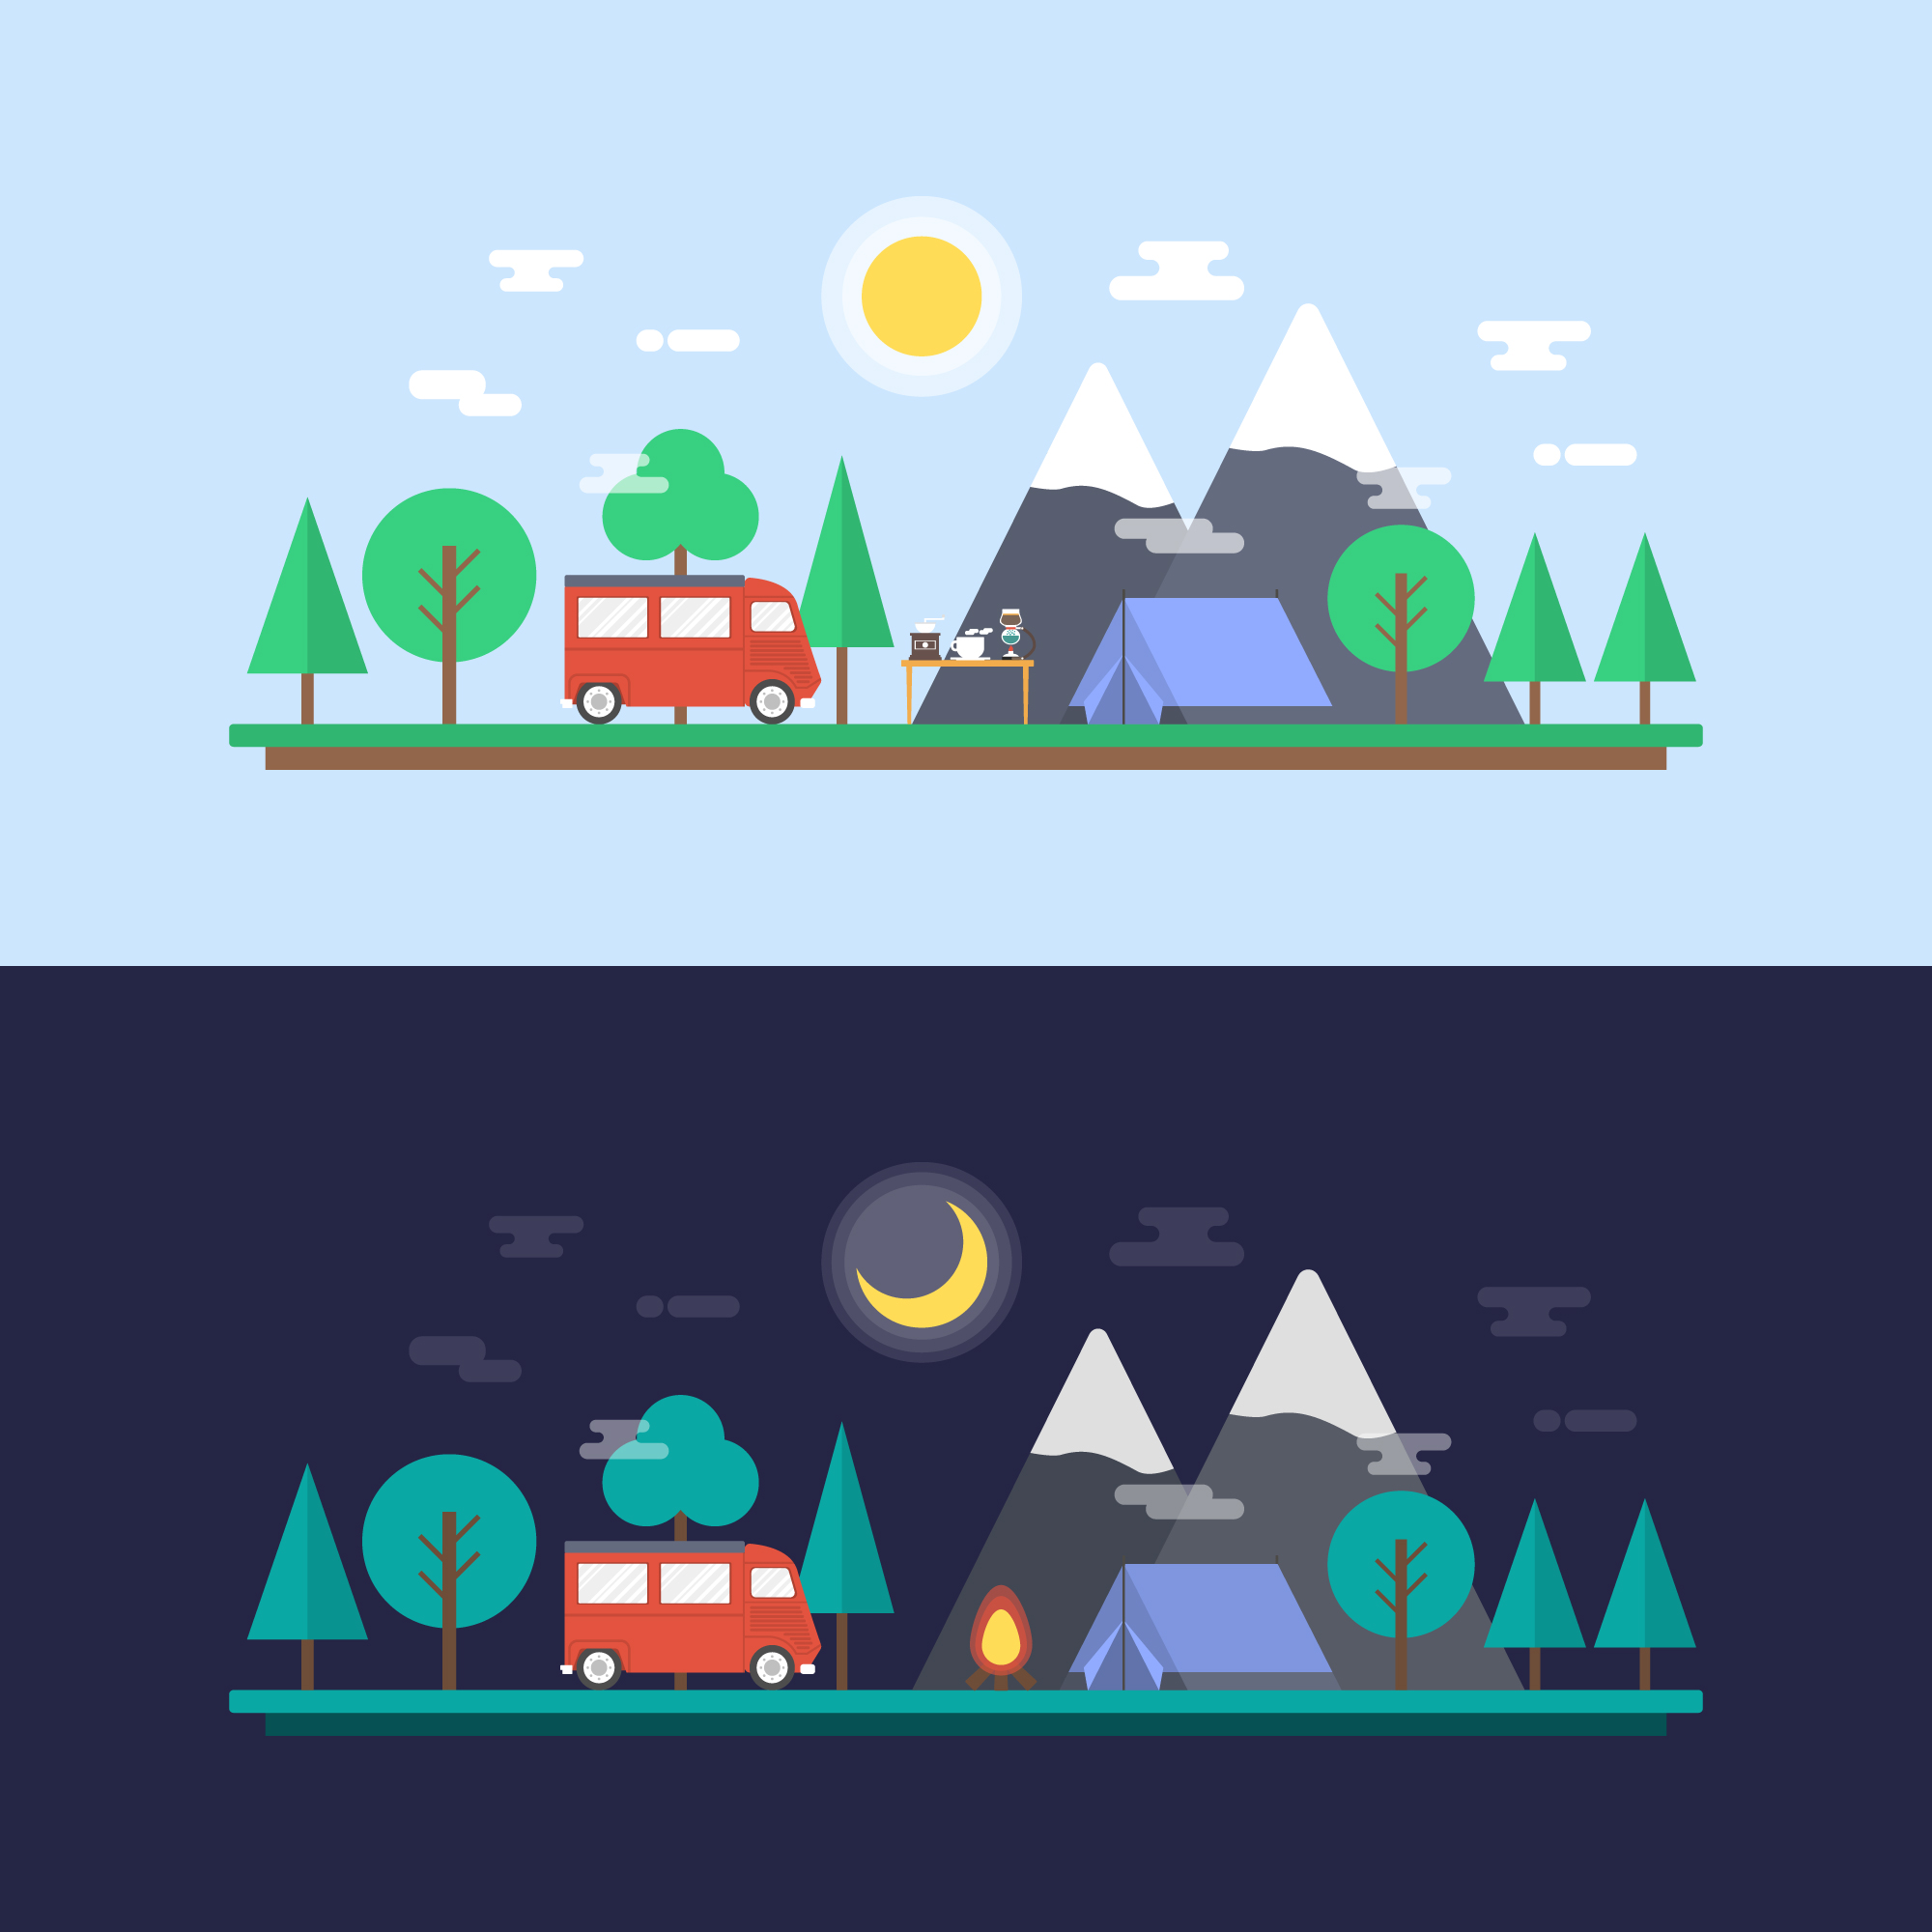 Camping designs collection